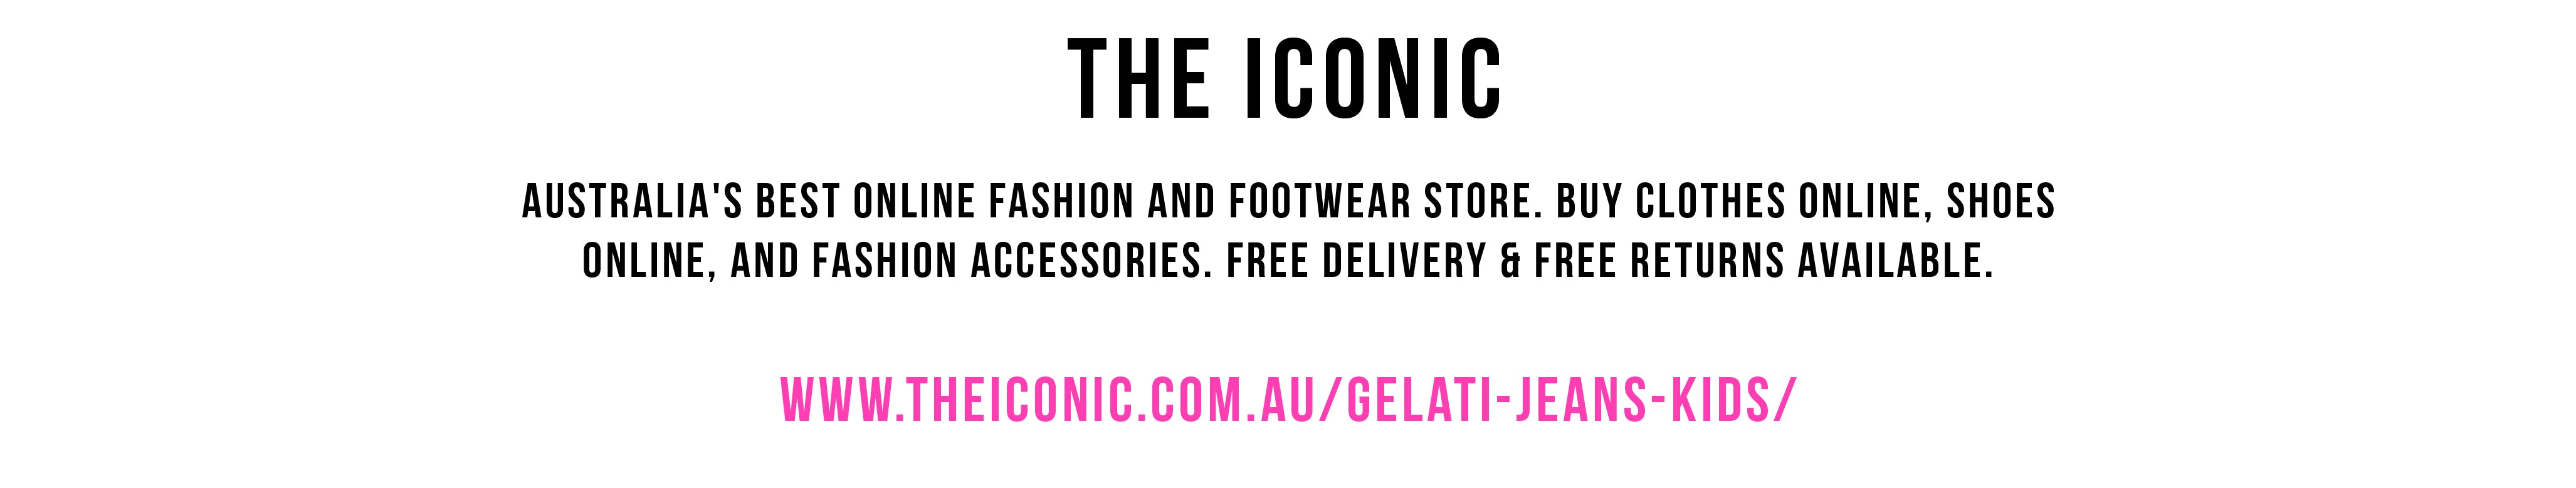 https://www.theiconic.com.au/gelati-jeans-kids/